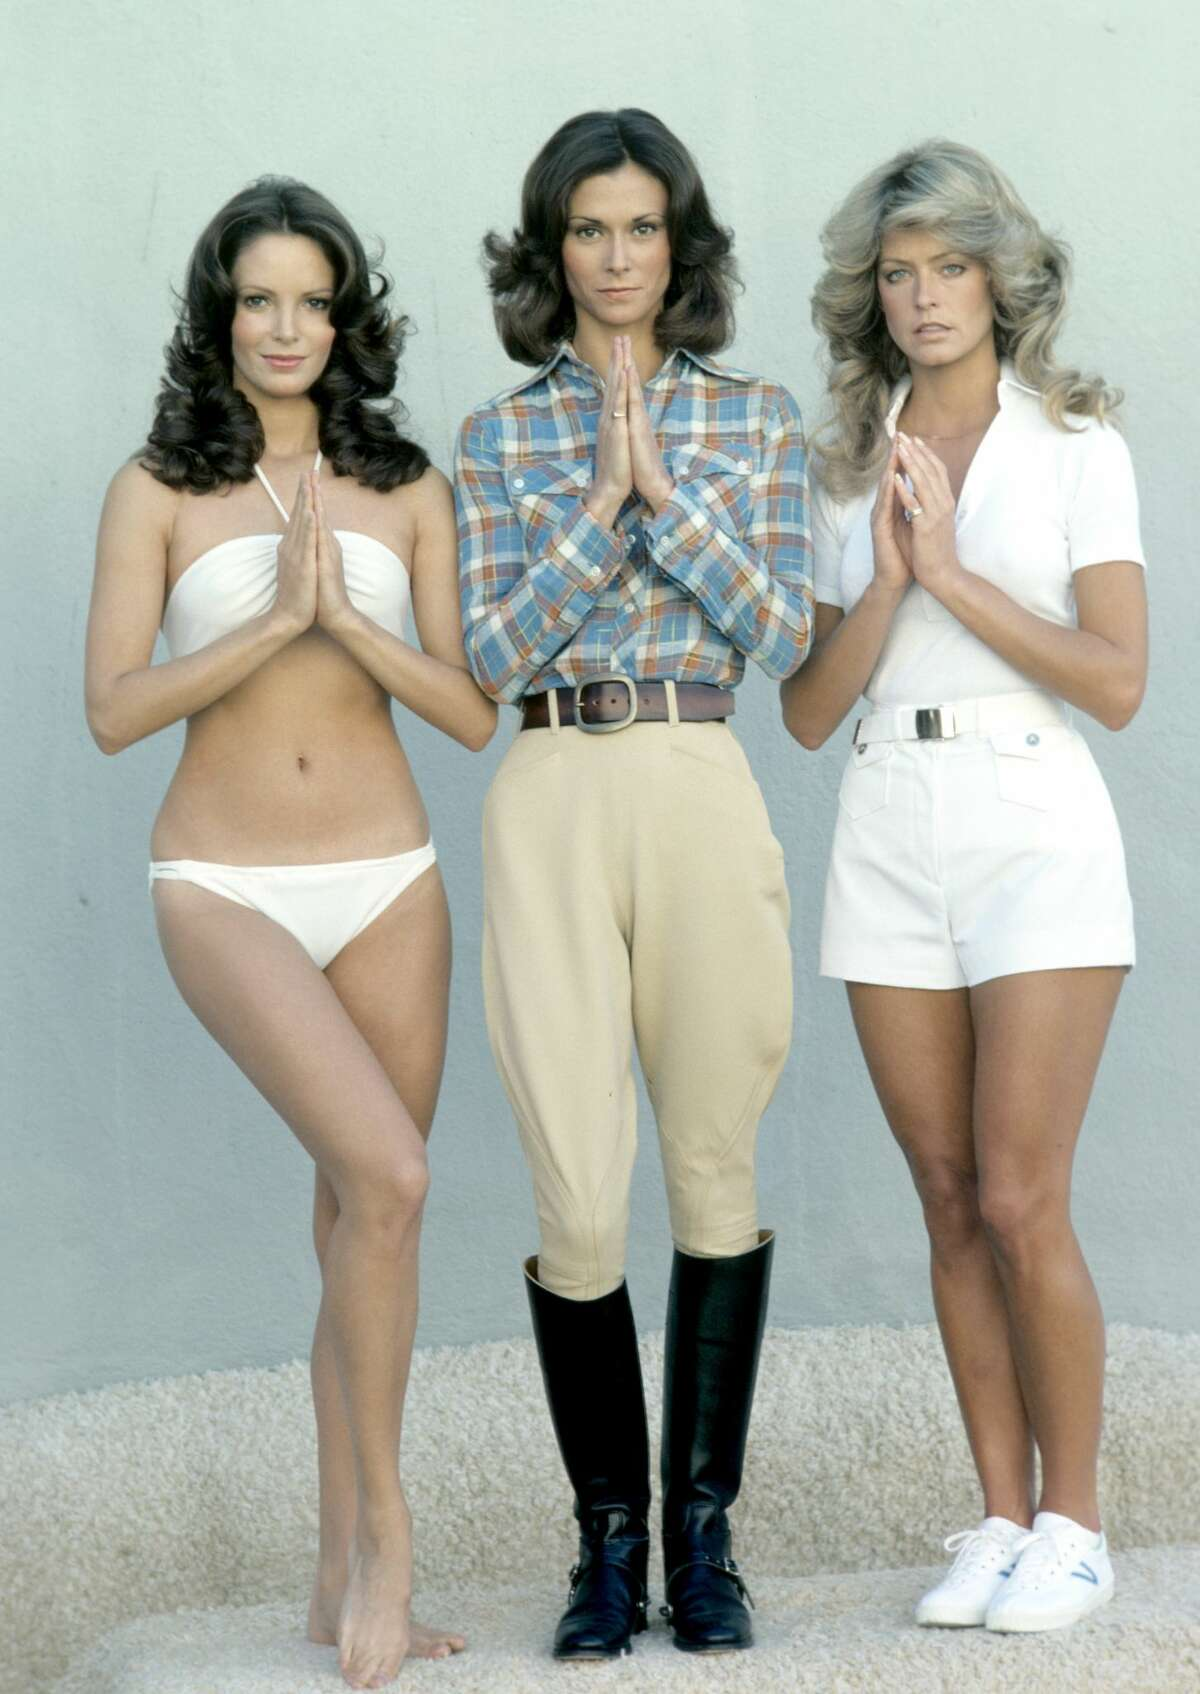 1976 | Charlie's Angels Three female private detectives have a private boss, Charlie, that they solve mysteries for clients.